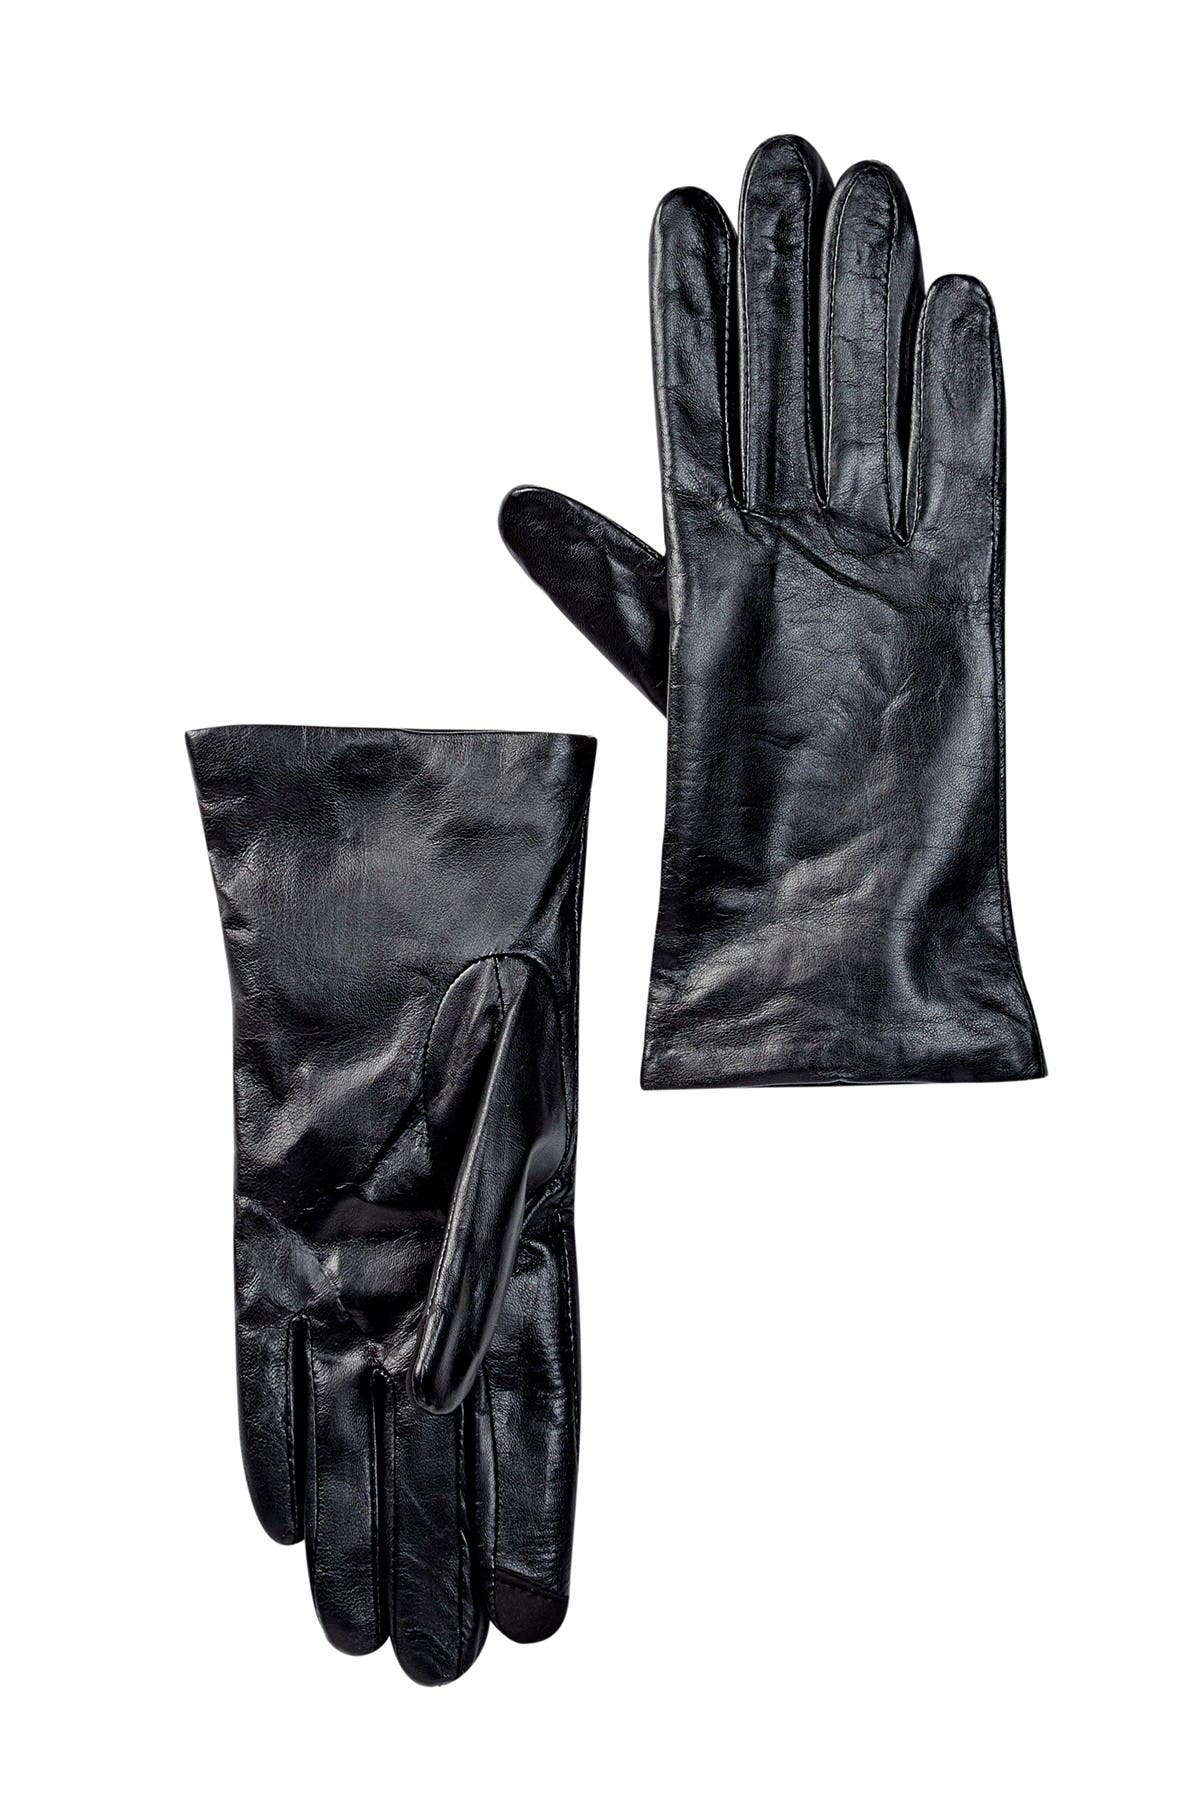 Image of Fownes Bros Touchpoint Cashmere Lined Leather Smart Gloves